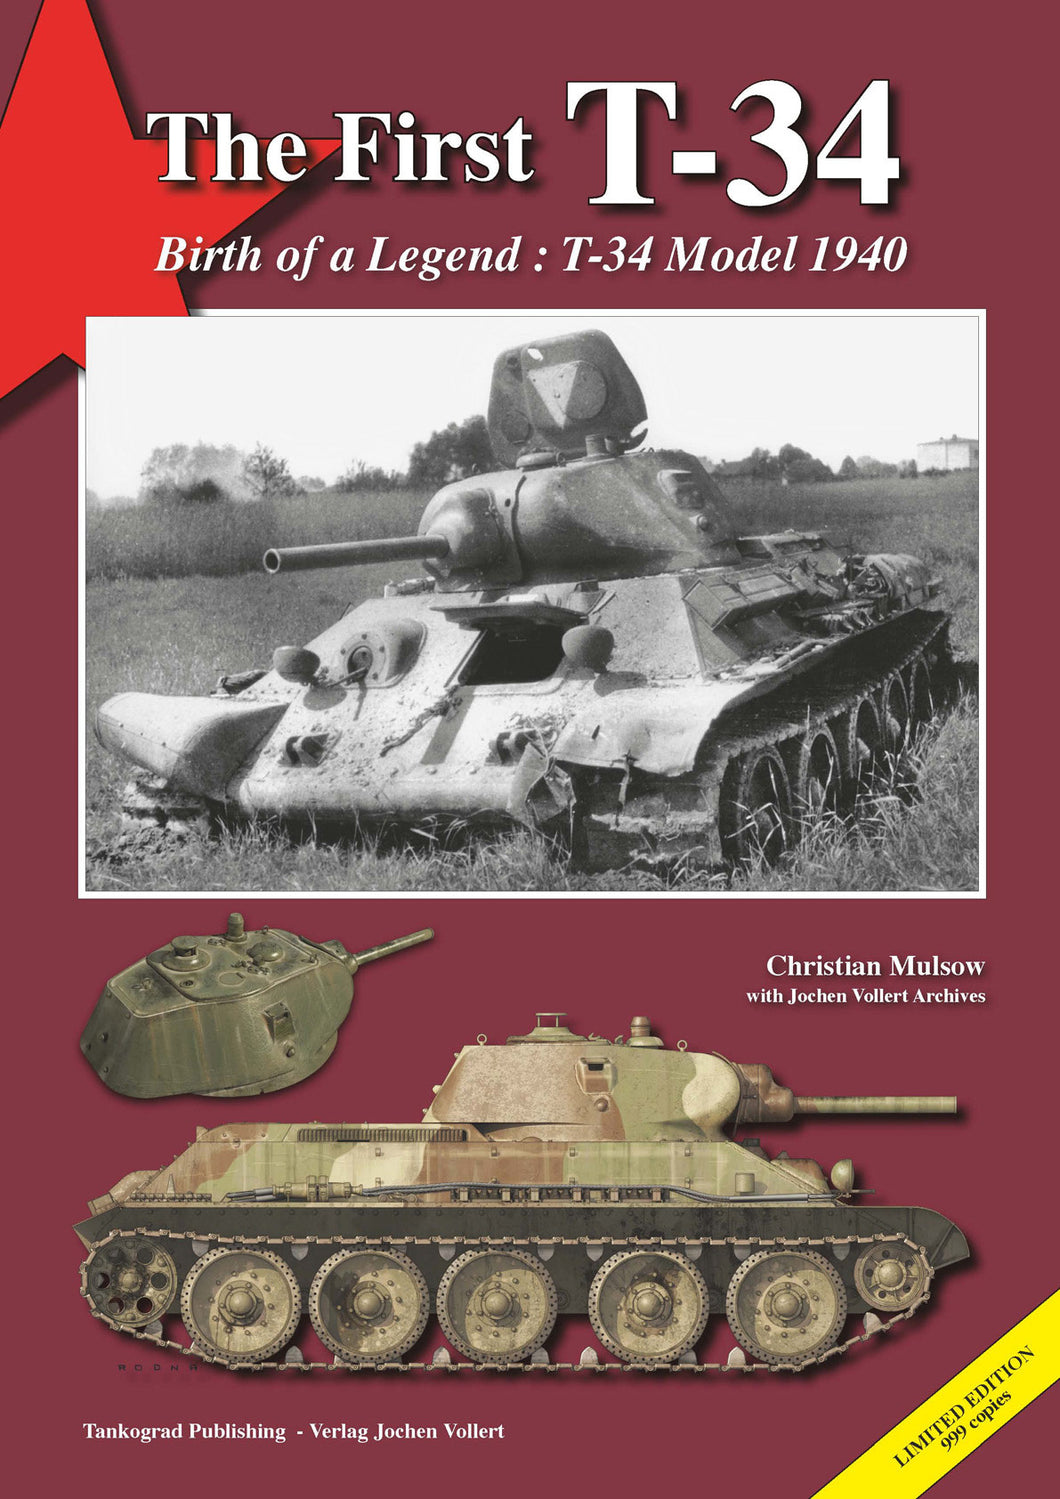 The First T-34 Birth of a Legend : The T-34 Model 1940